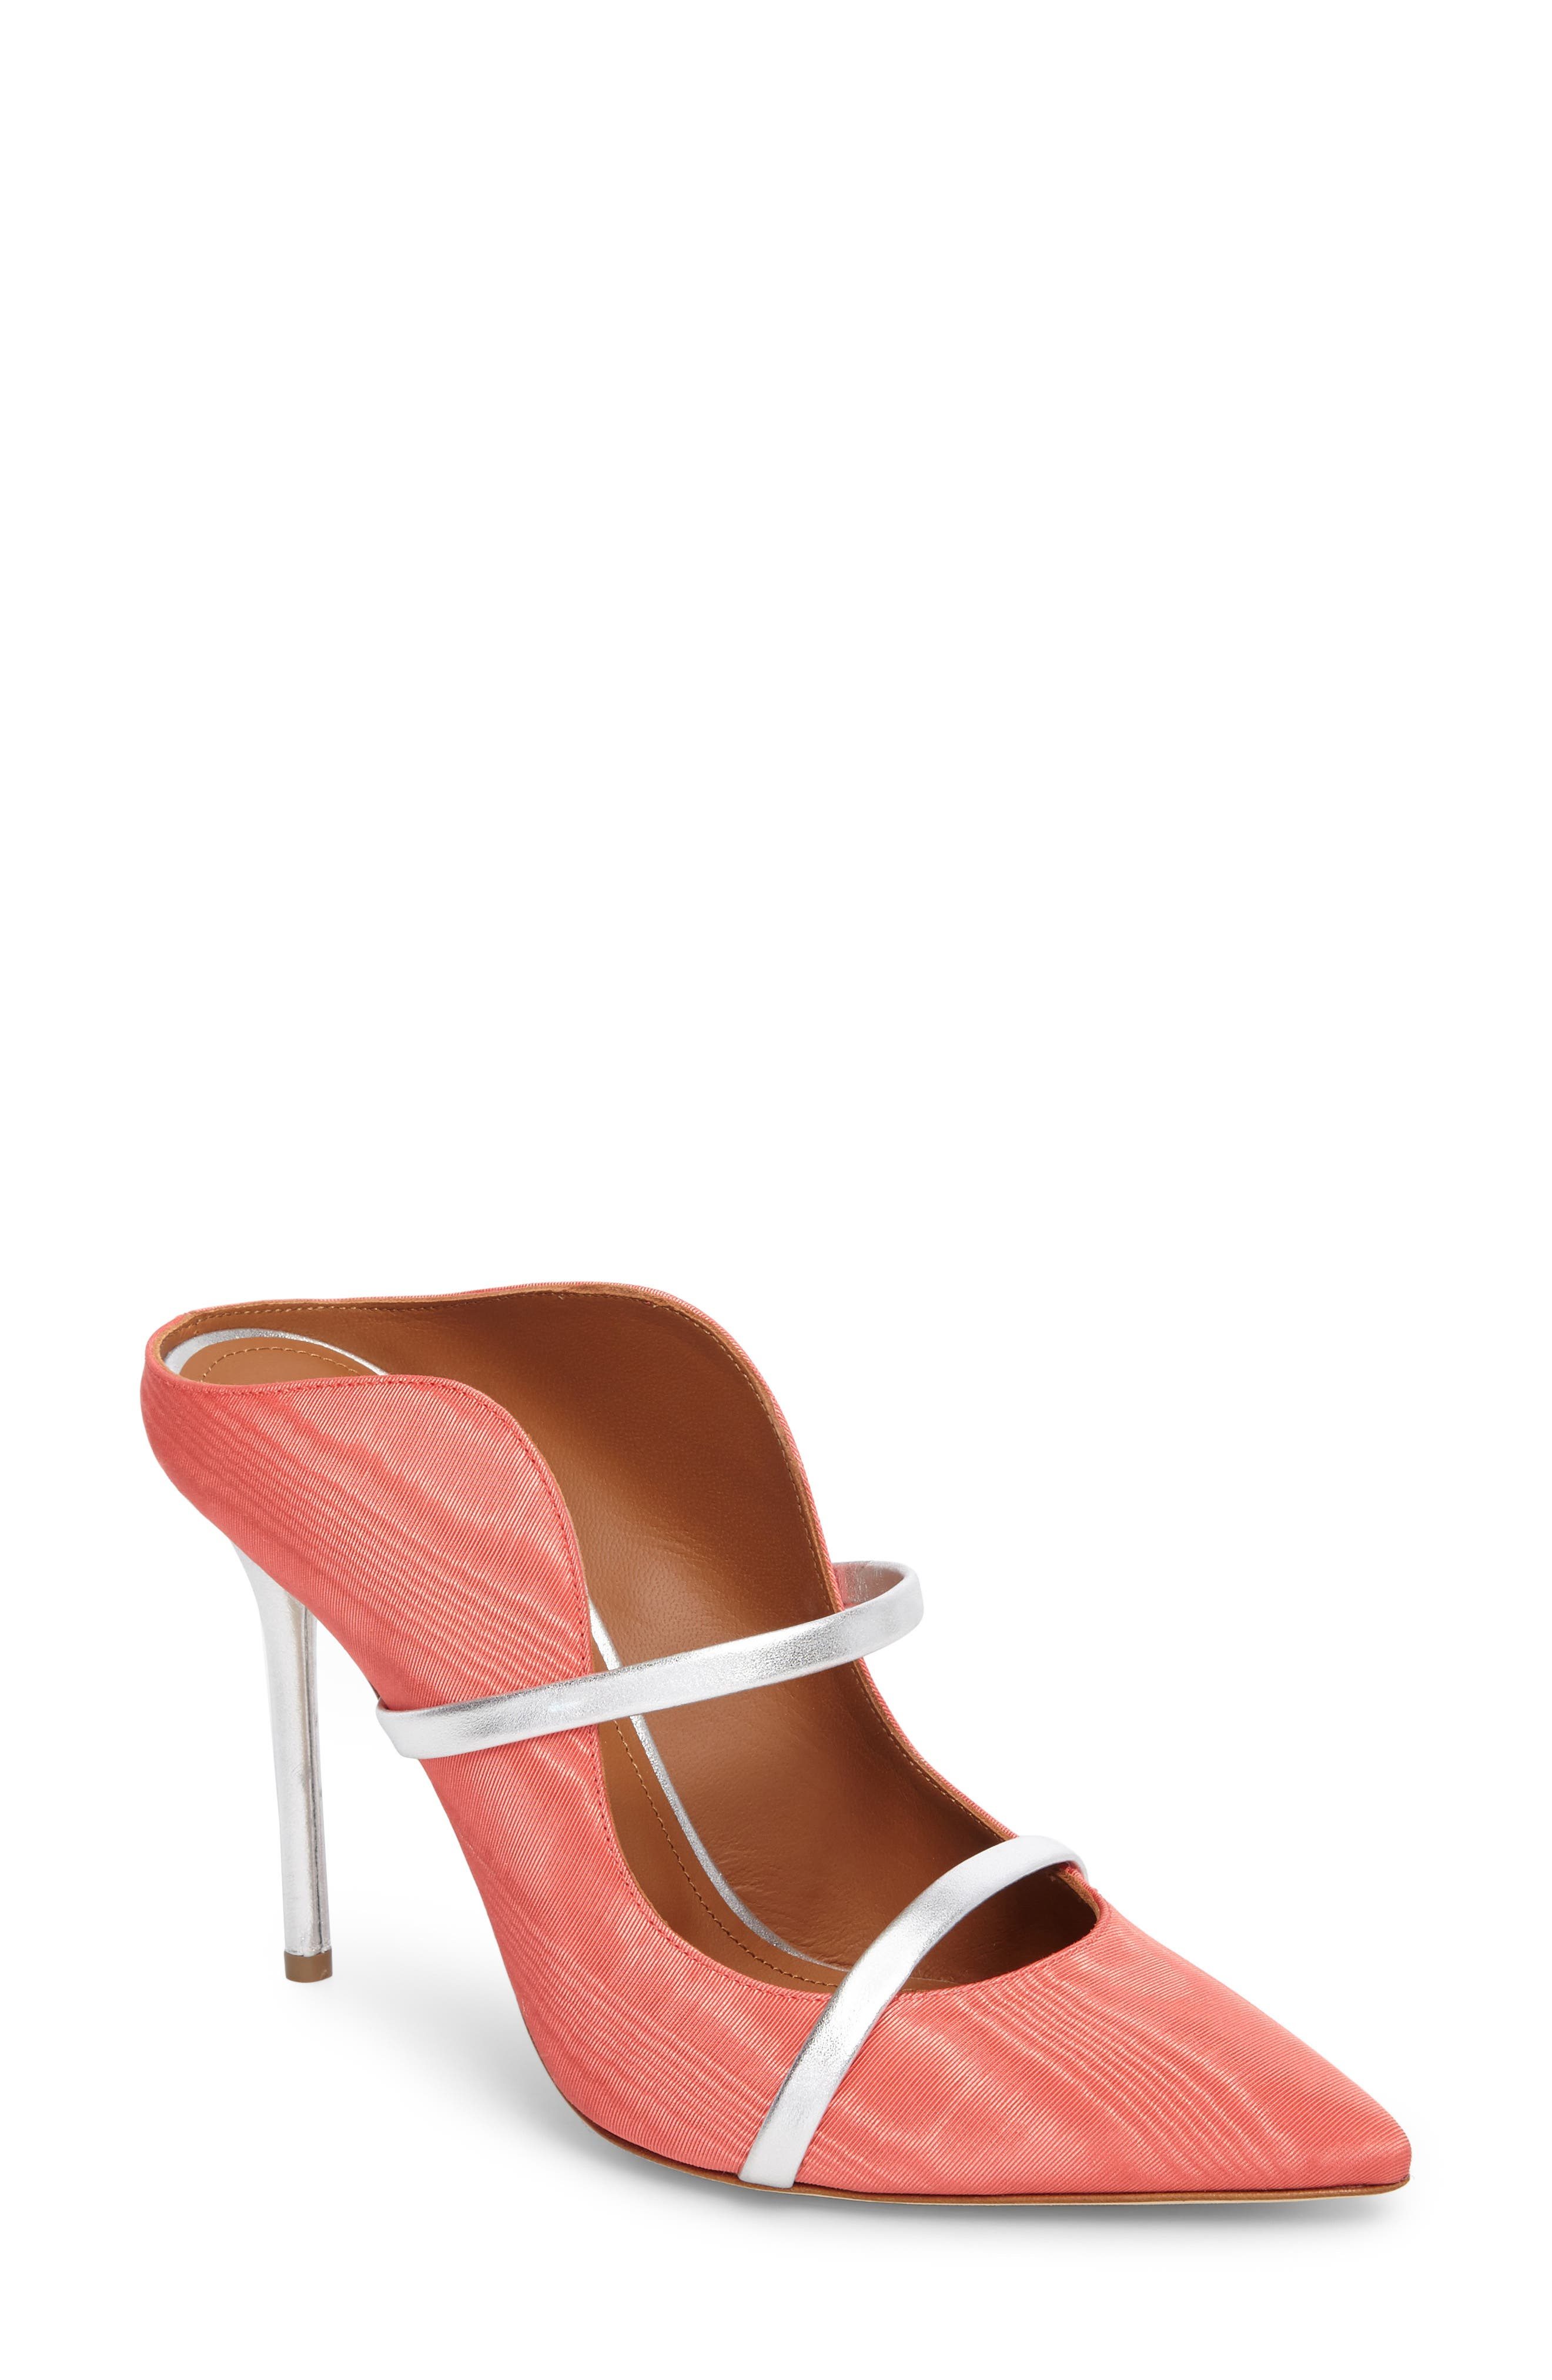 Main Image - Malone Souliers Maureen Double Band Mule (Women)